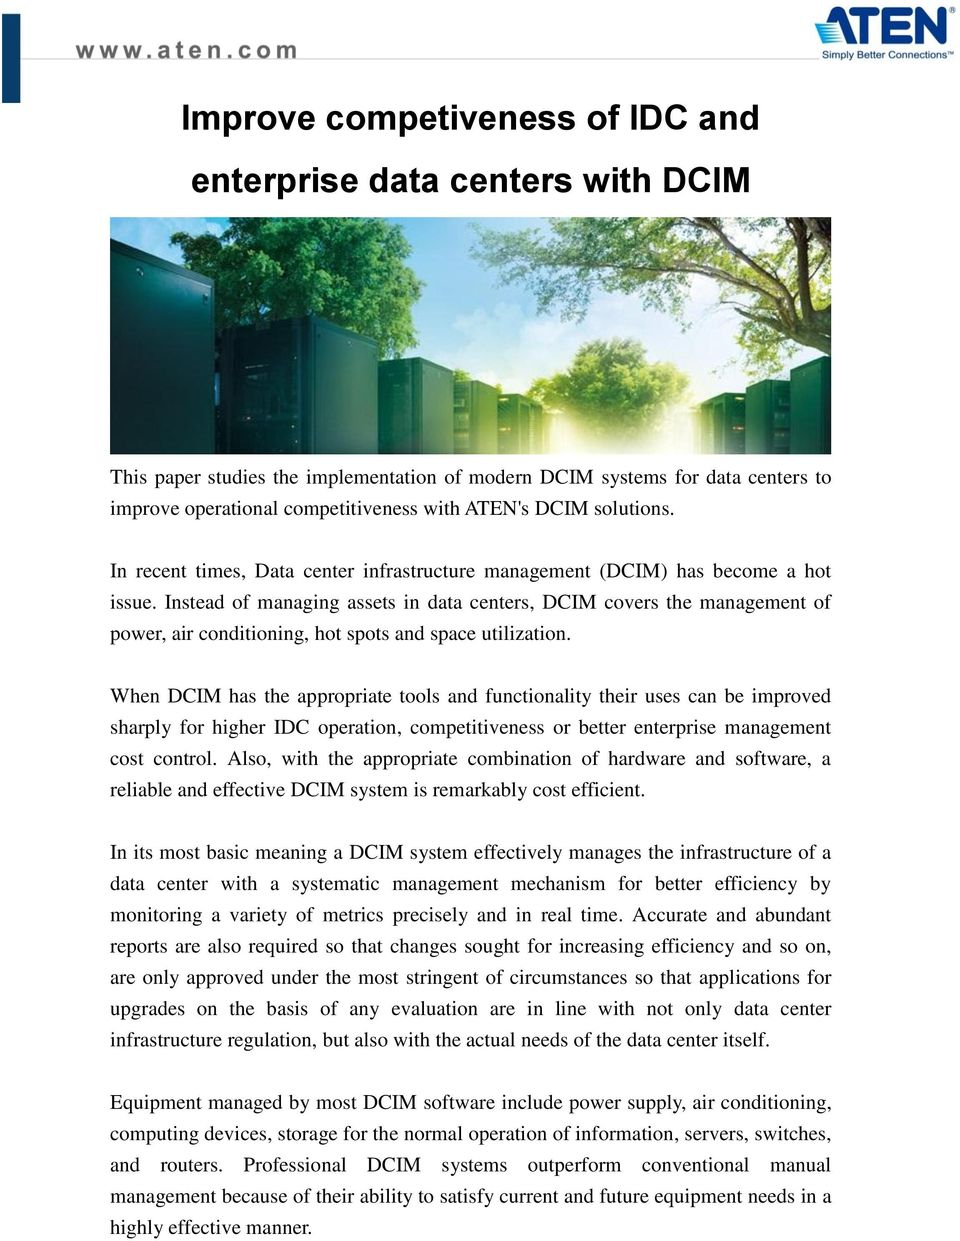 Instead of managing assets in data centers, DCIM covers the management of power, air conditioning, hot spots and space utilization.